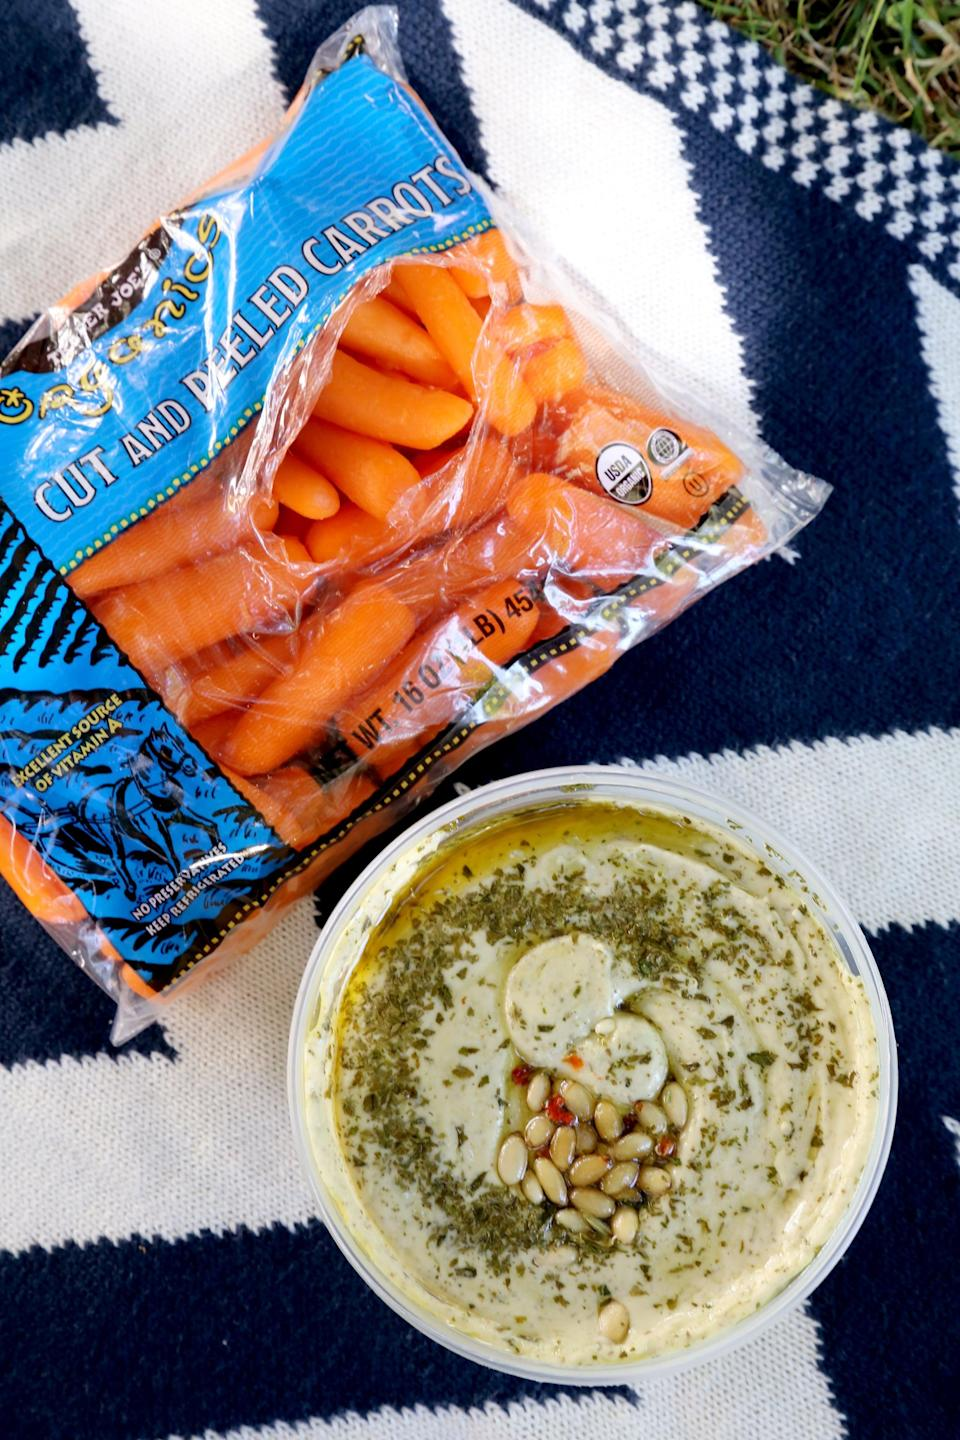 <p>This is hands down our favorite hummus from Trader Joe's, and its large size makes it ideal for serving a crowd. The white beans give the hummus extra creaminess, and the basil flavor is reminiscent of pesto.</p>